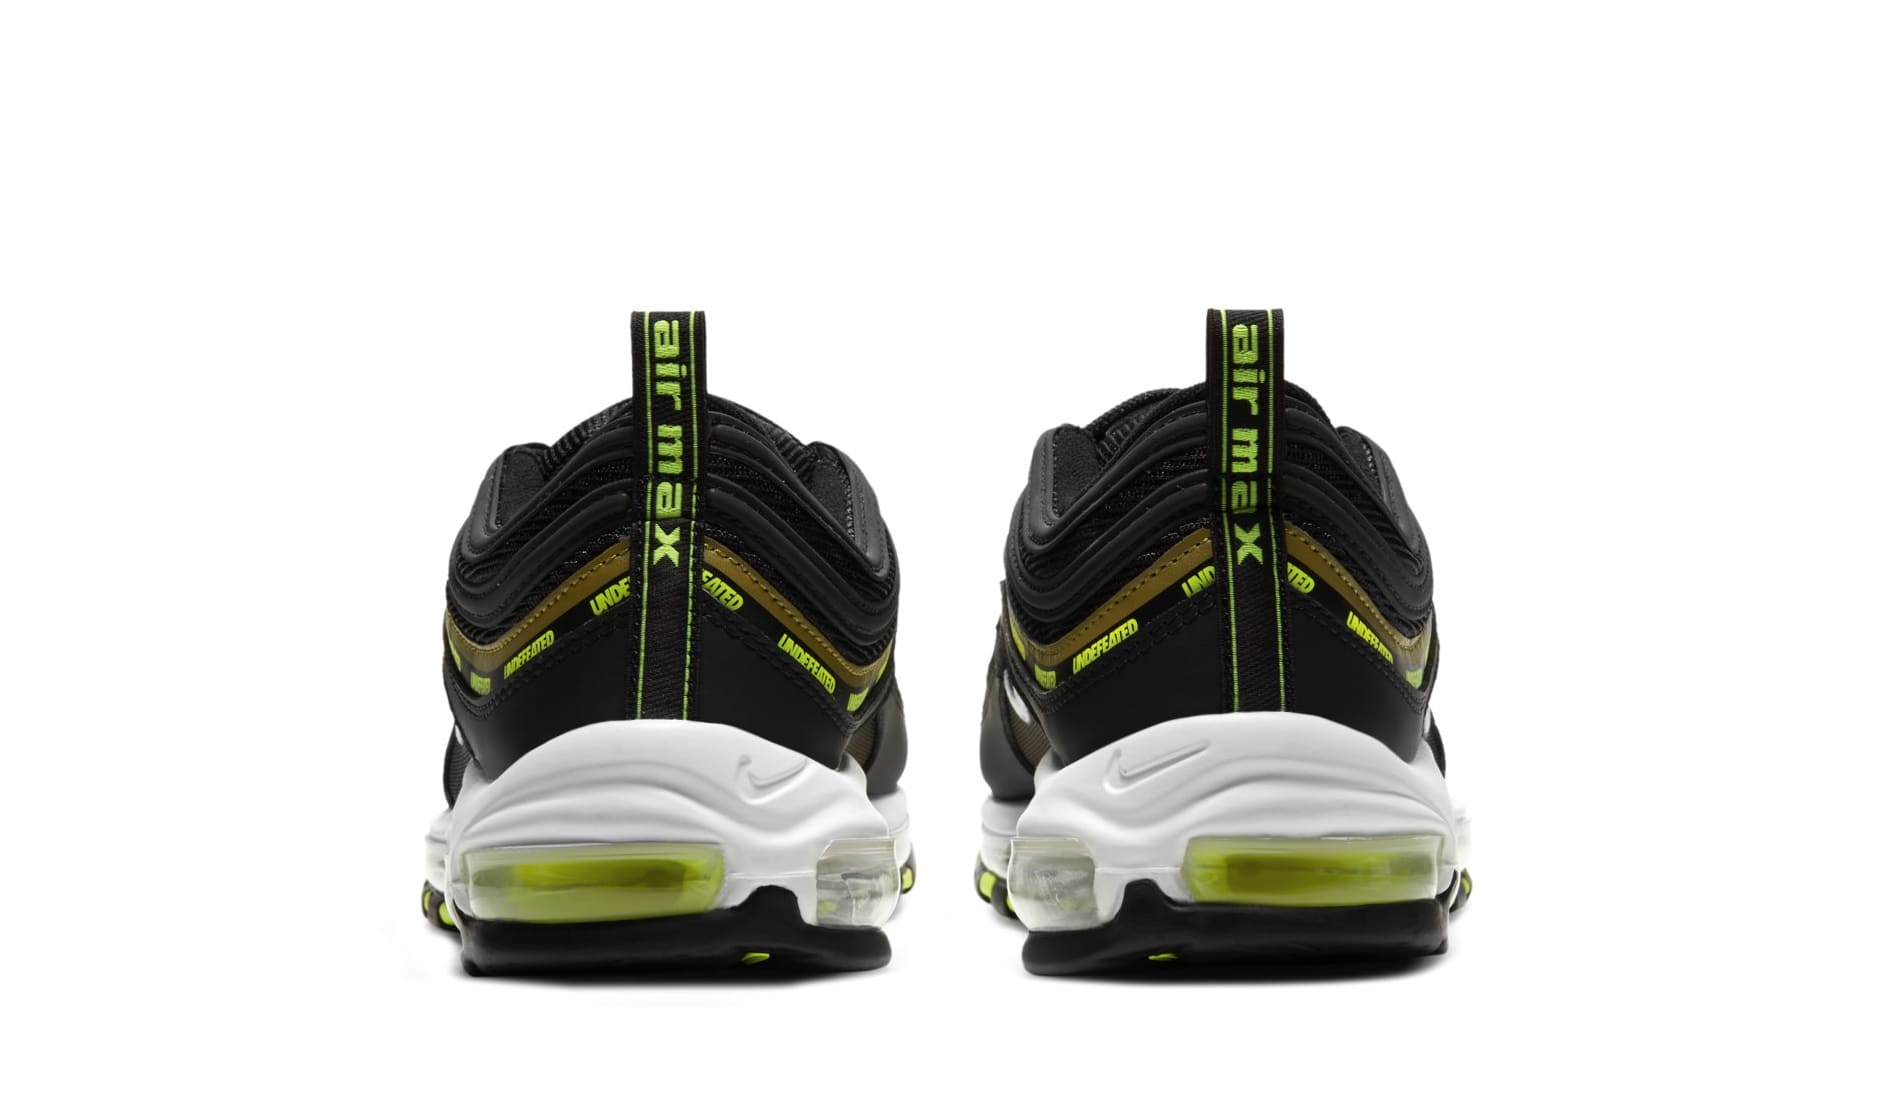 Undefeated x Nike Air Max 97 'Black/Volt' DC4830-001 (Heel)